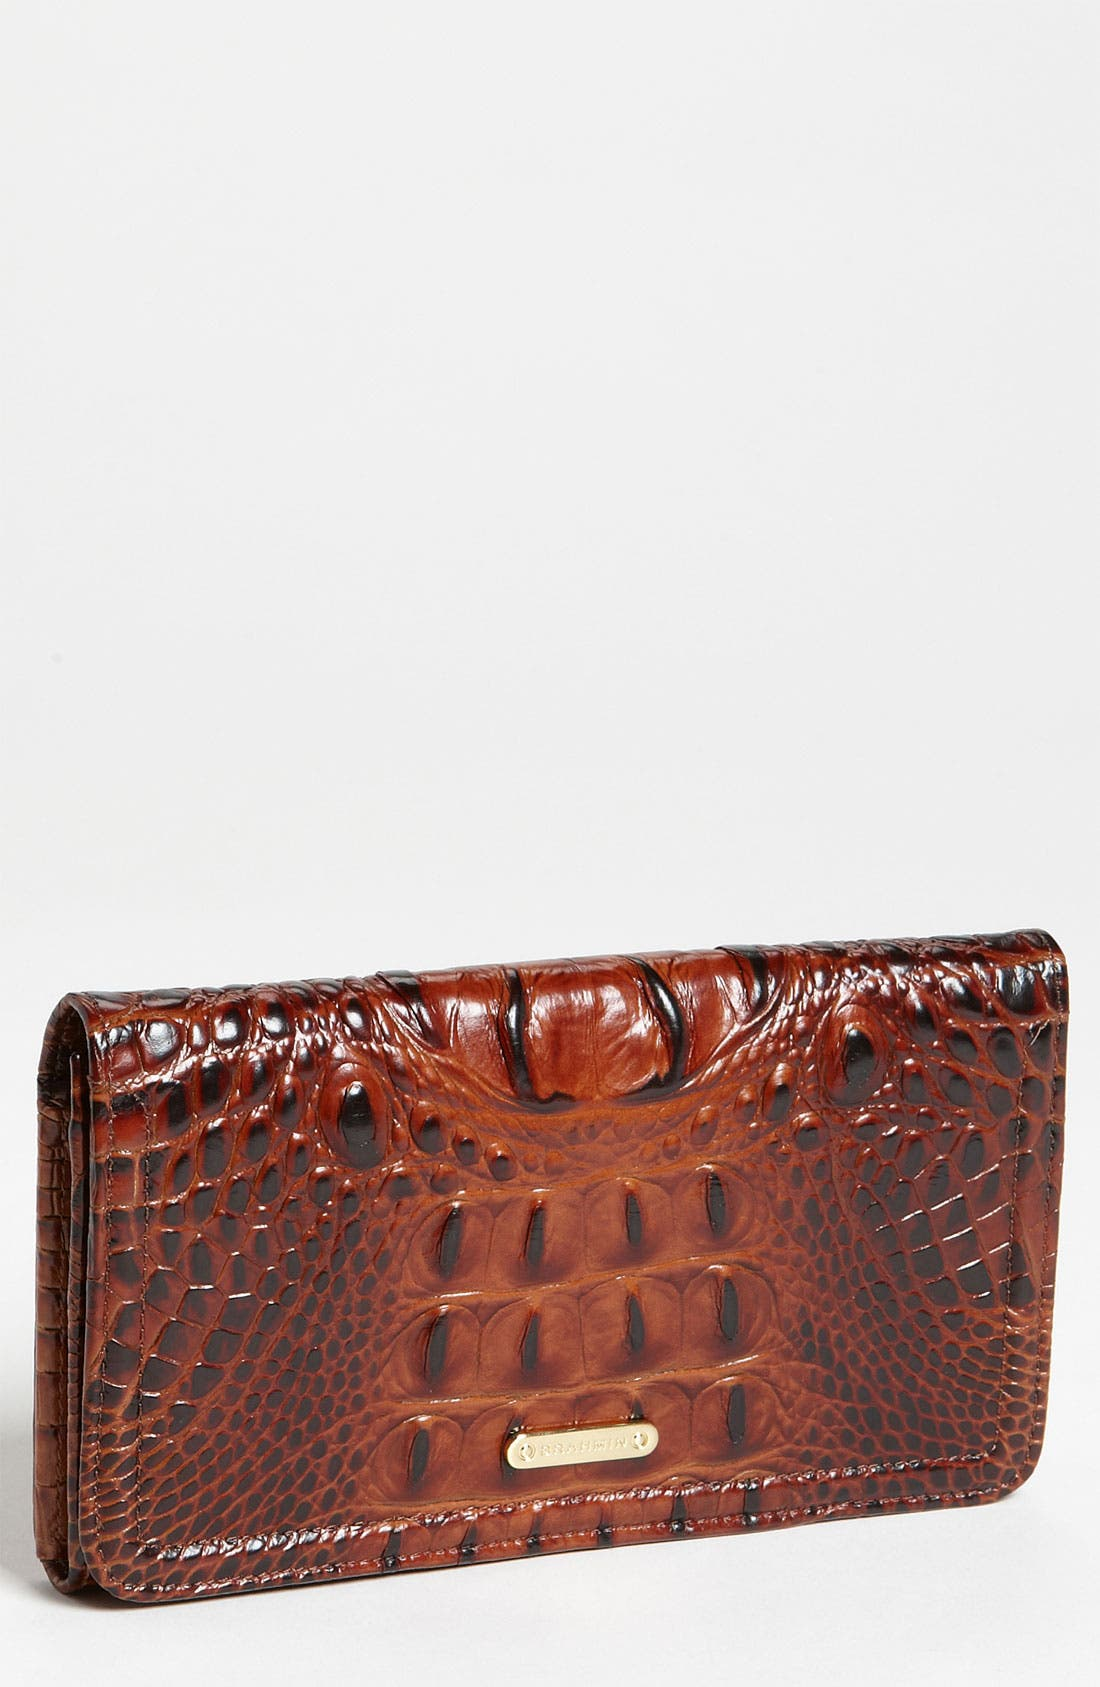 Main Image - Brahmin Croc Embossed Leather Continental Wallet